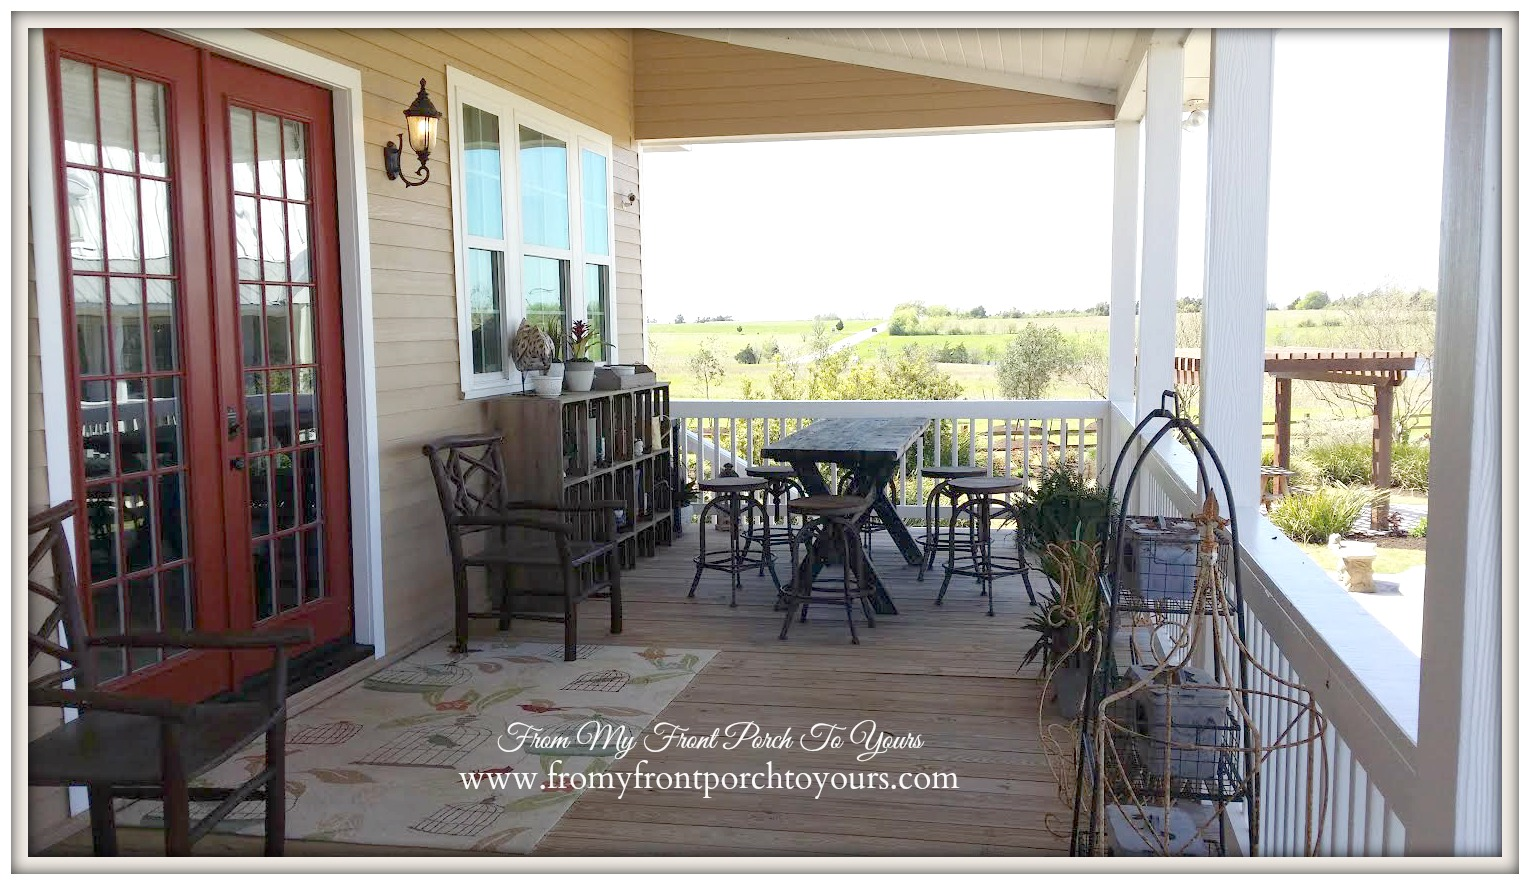 Texas Farmhouse Porch RoundTop Trendmaker Homes From My Front To Yours